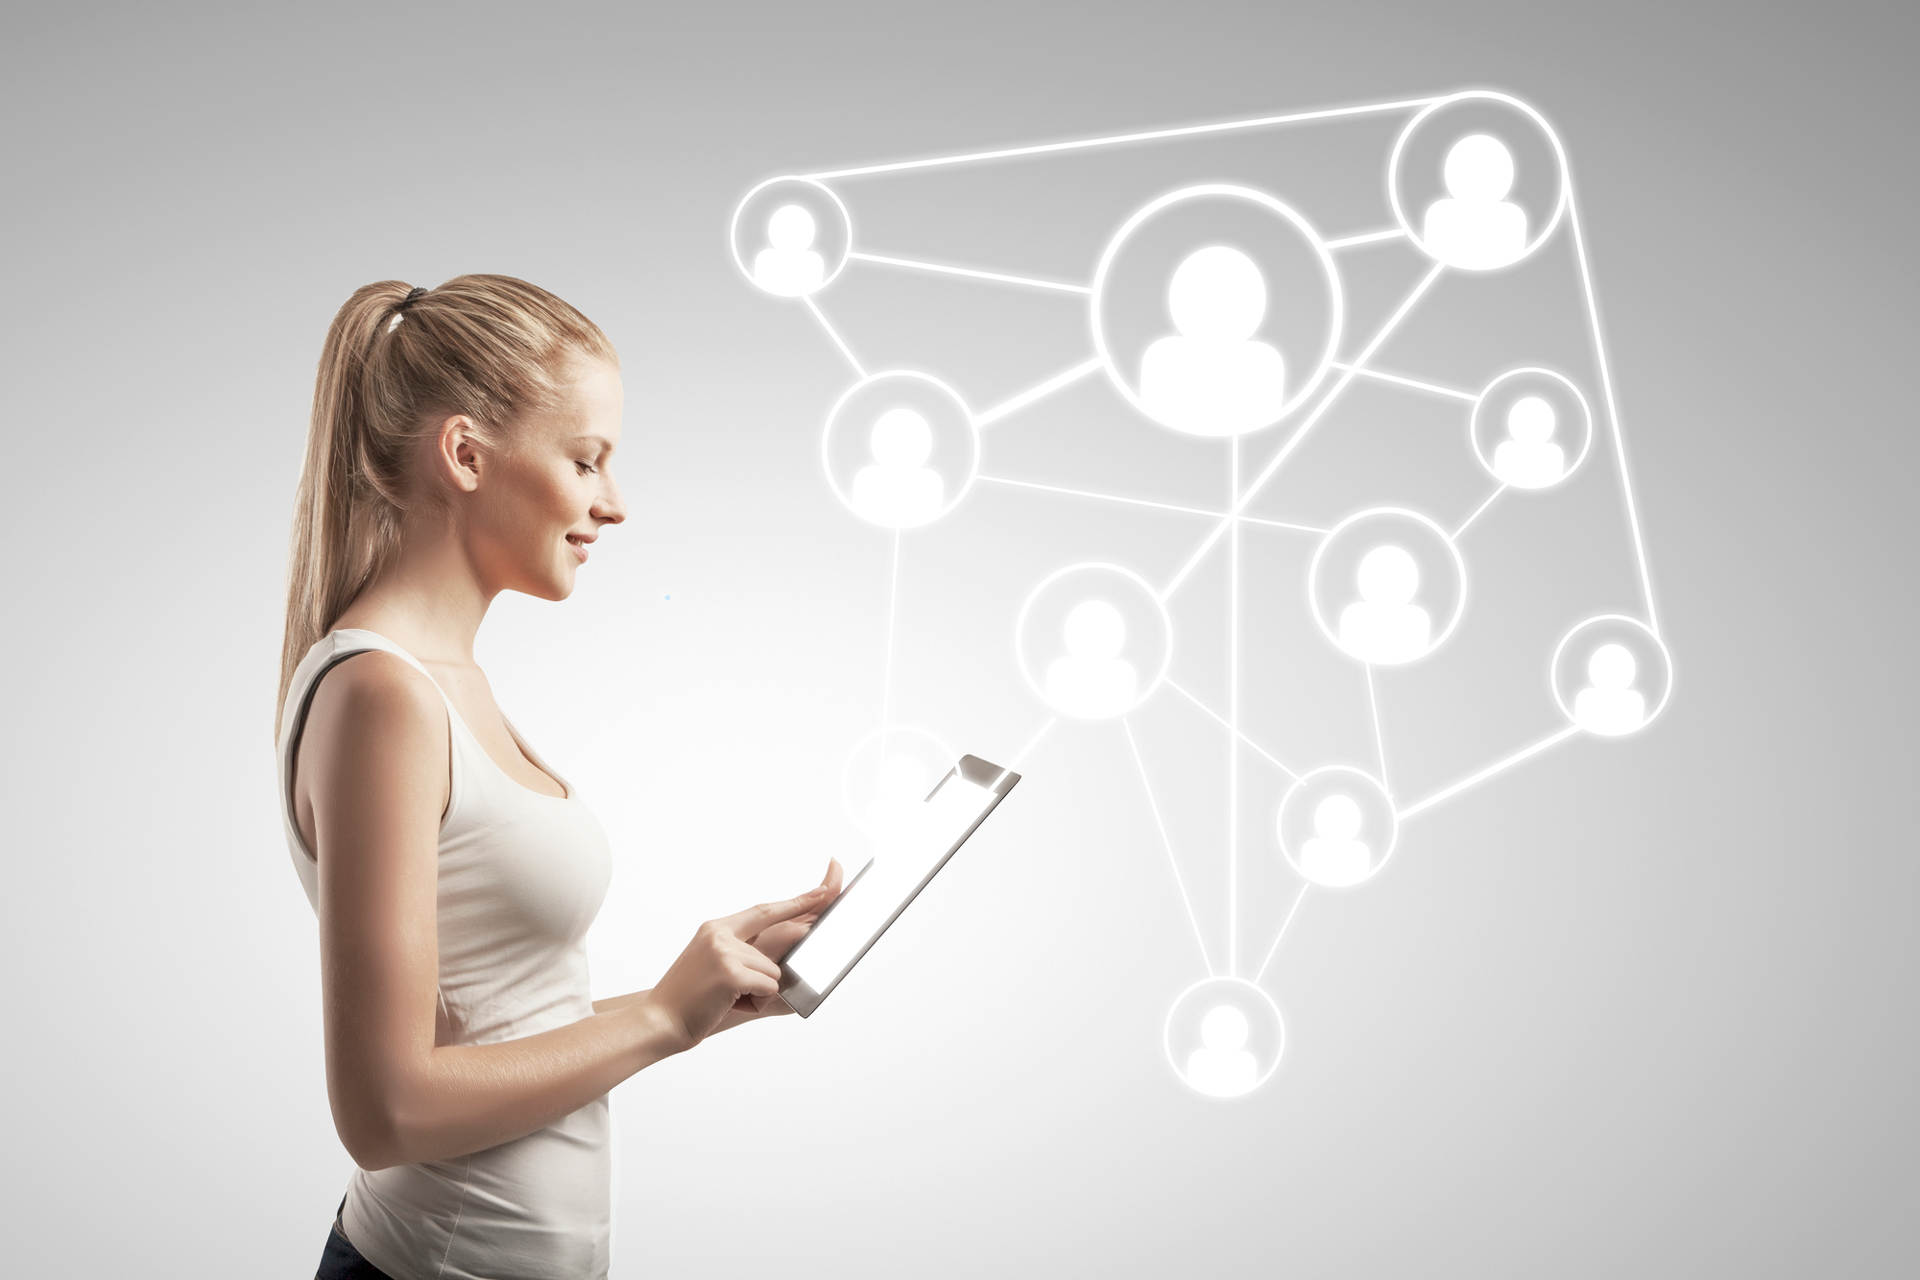 Networked Job Management: What it Means for the Workplace